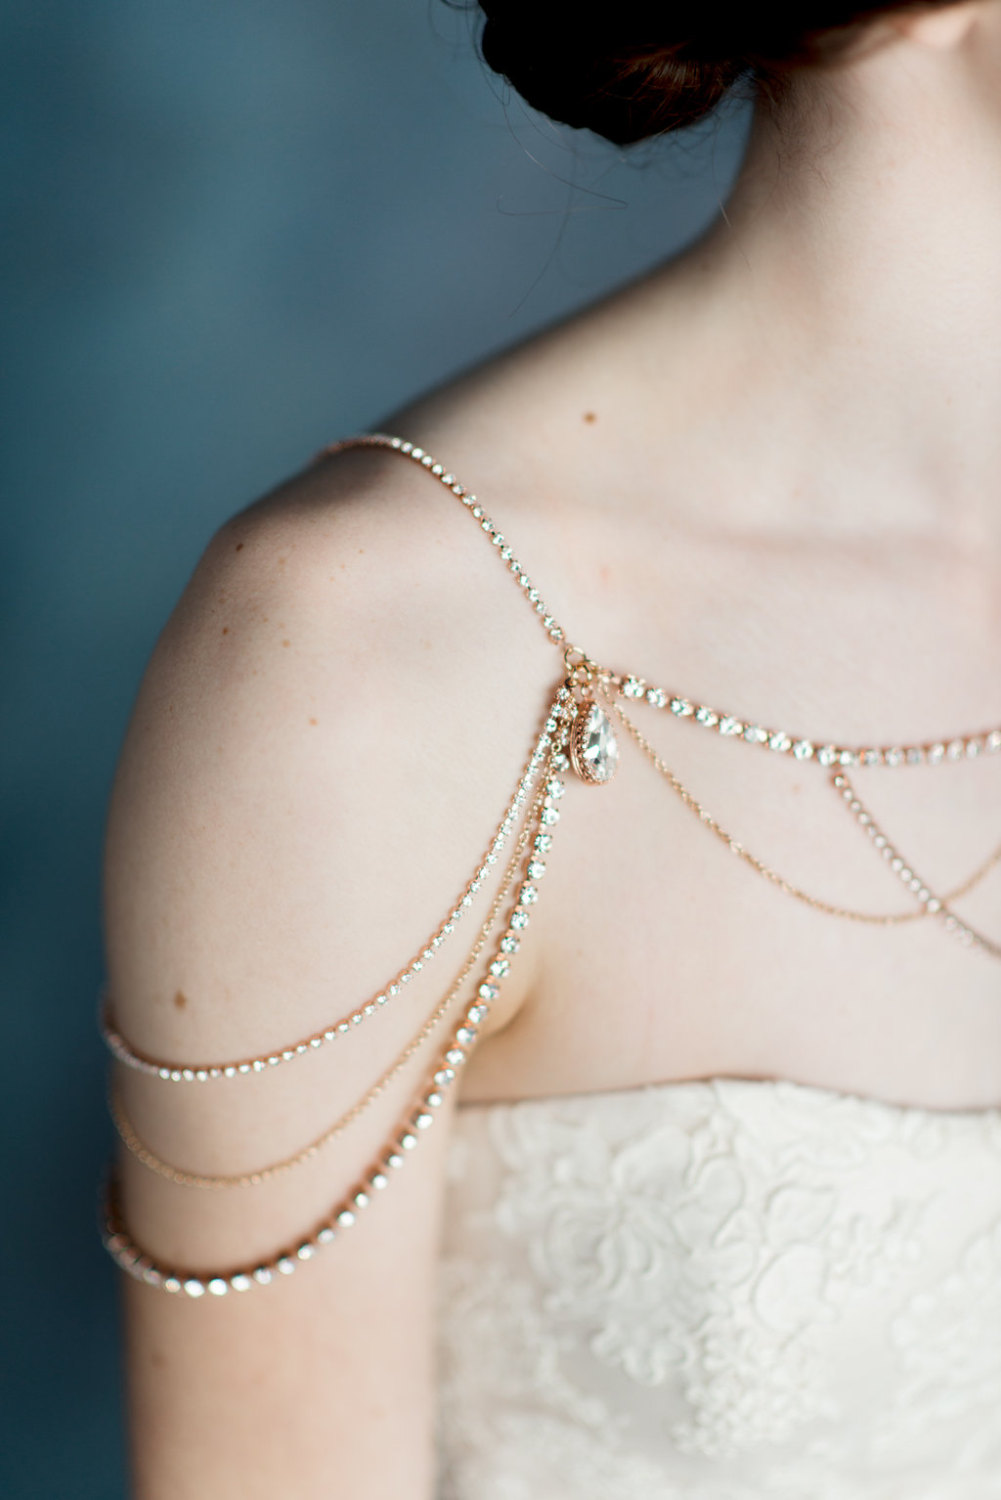 Shoulder Jewelry Bridal Collection by Blair Nadeau Millinery